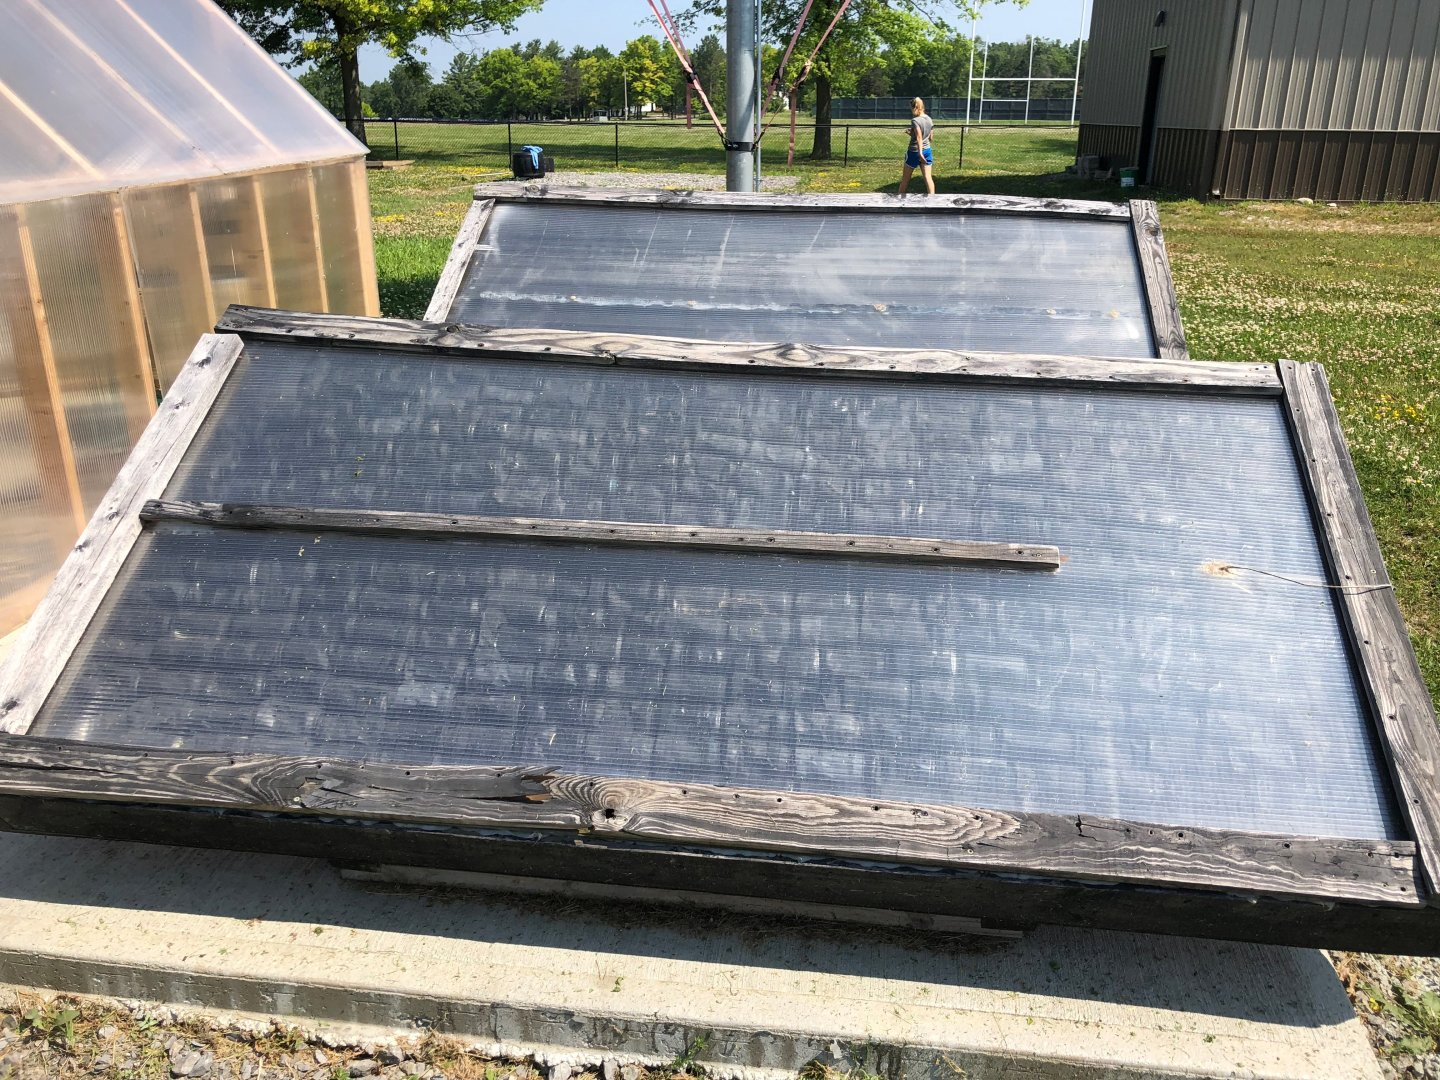 Solar collectors next to the greenhouse